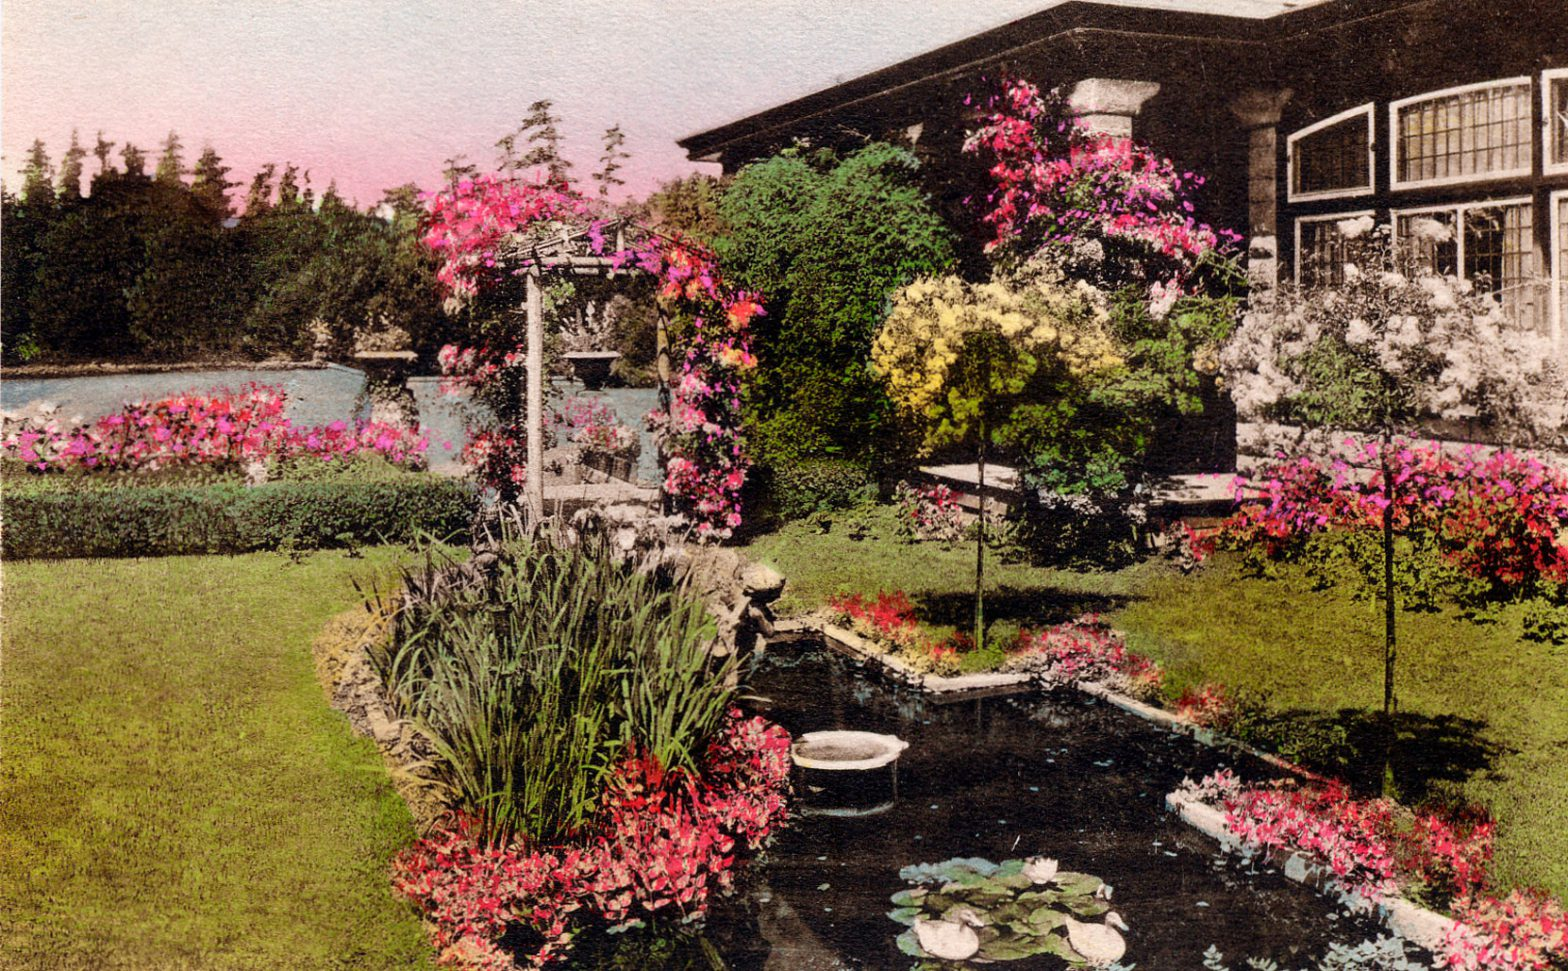 Postcard showing the 1911 Sun Room addition to Benvenuto and the site of Jennie Butchart's Private Garden, circa 1912-1919. (Author's collection)